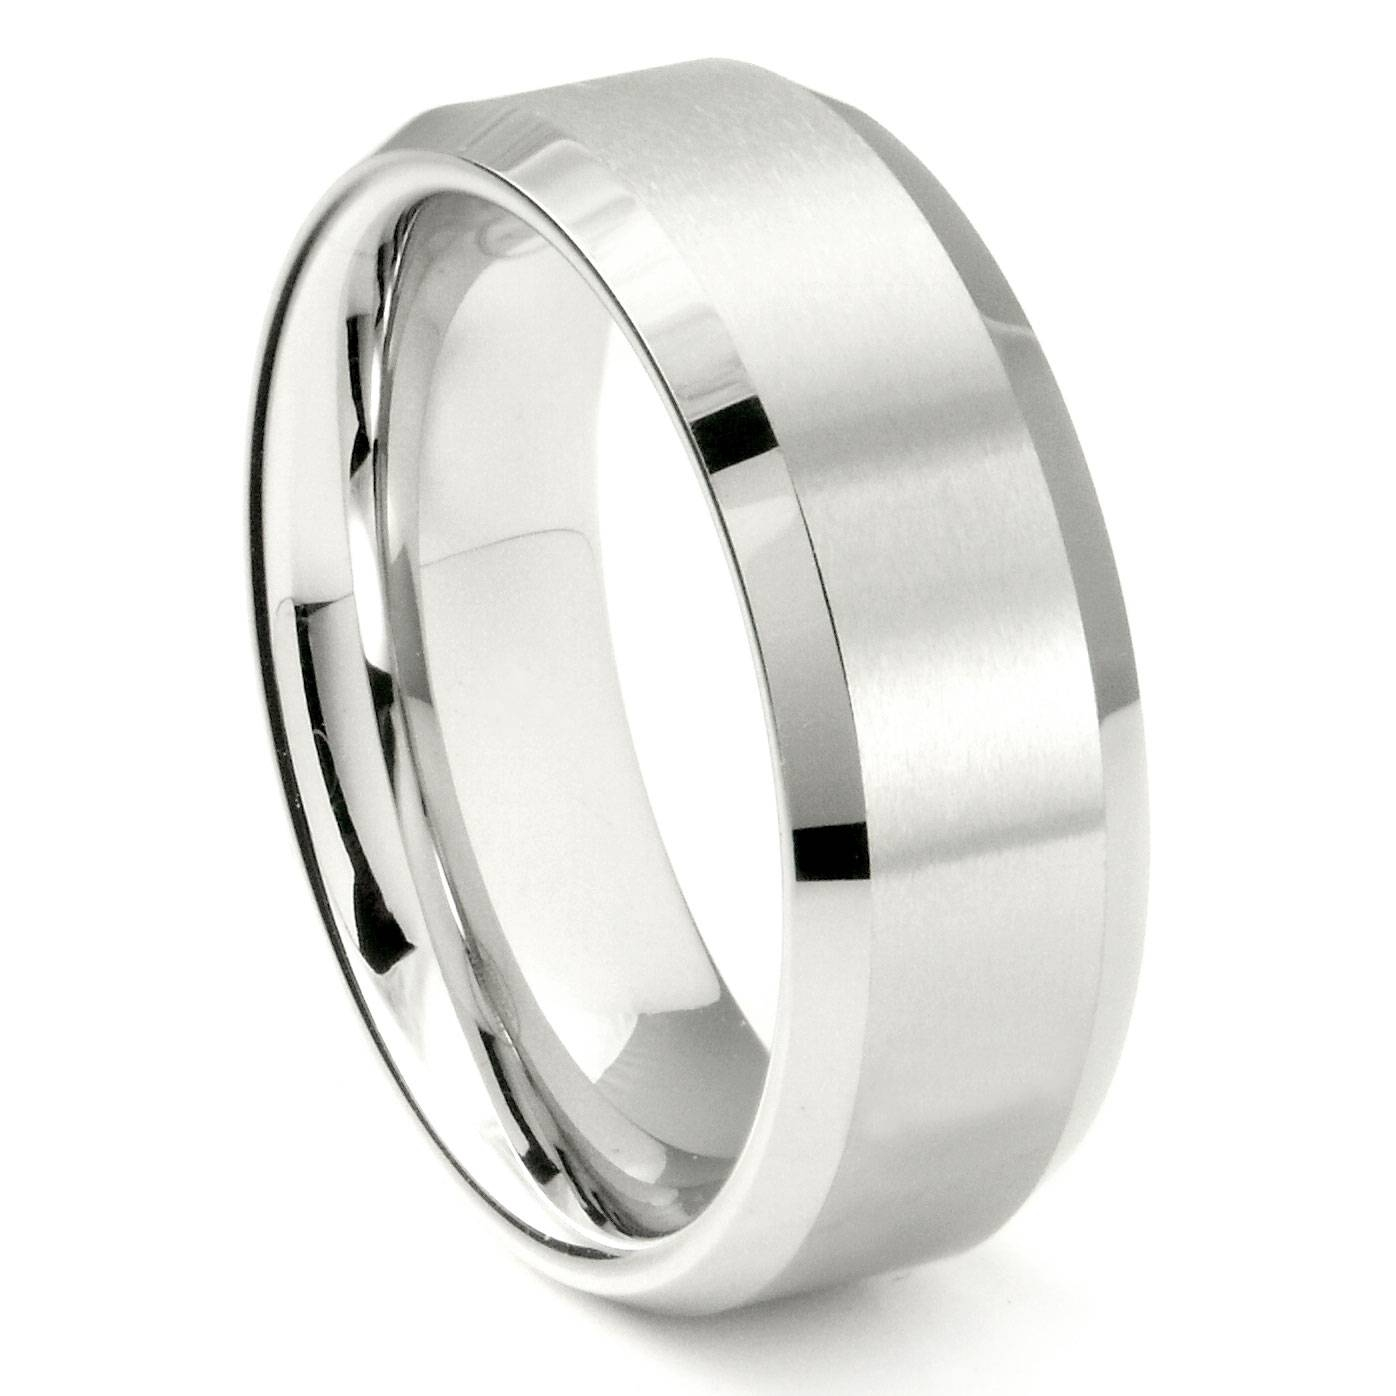 White Tungsten Carbide 8Mm Beveled Wedding Band Ring In 8Mm Tungsten Carbide Wedding Bands (View 15 of 15)